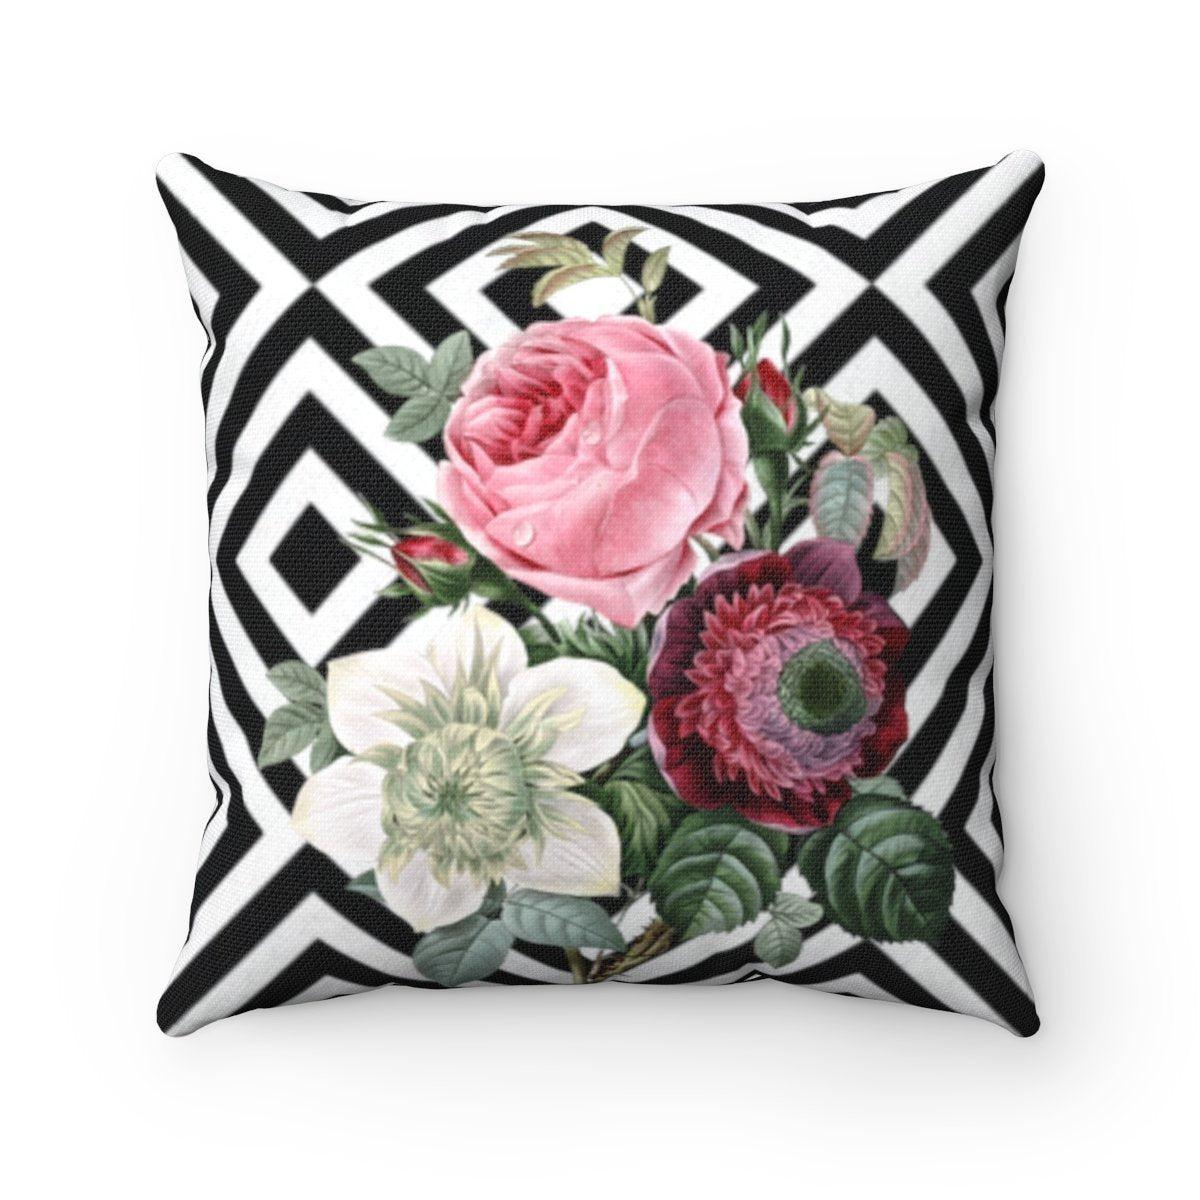 Luxury Rose | Floral abstract decorative cushion cover-Home Decor - Decorative Accents - Pillows & Throws - Decorative Pillows-Maison d'Elite-14x14-Très Elite